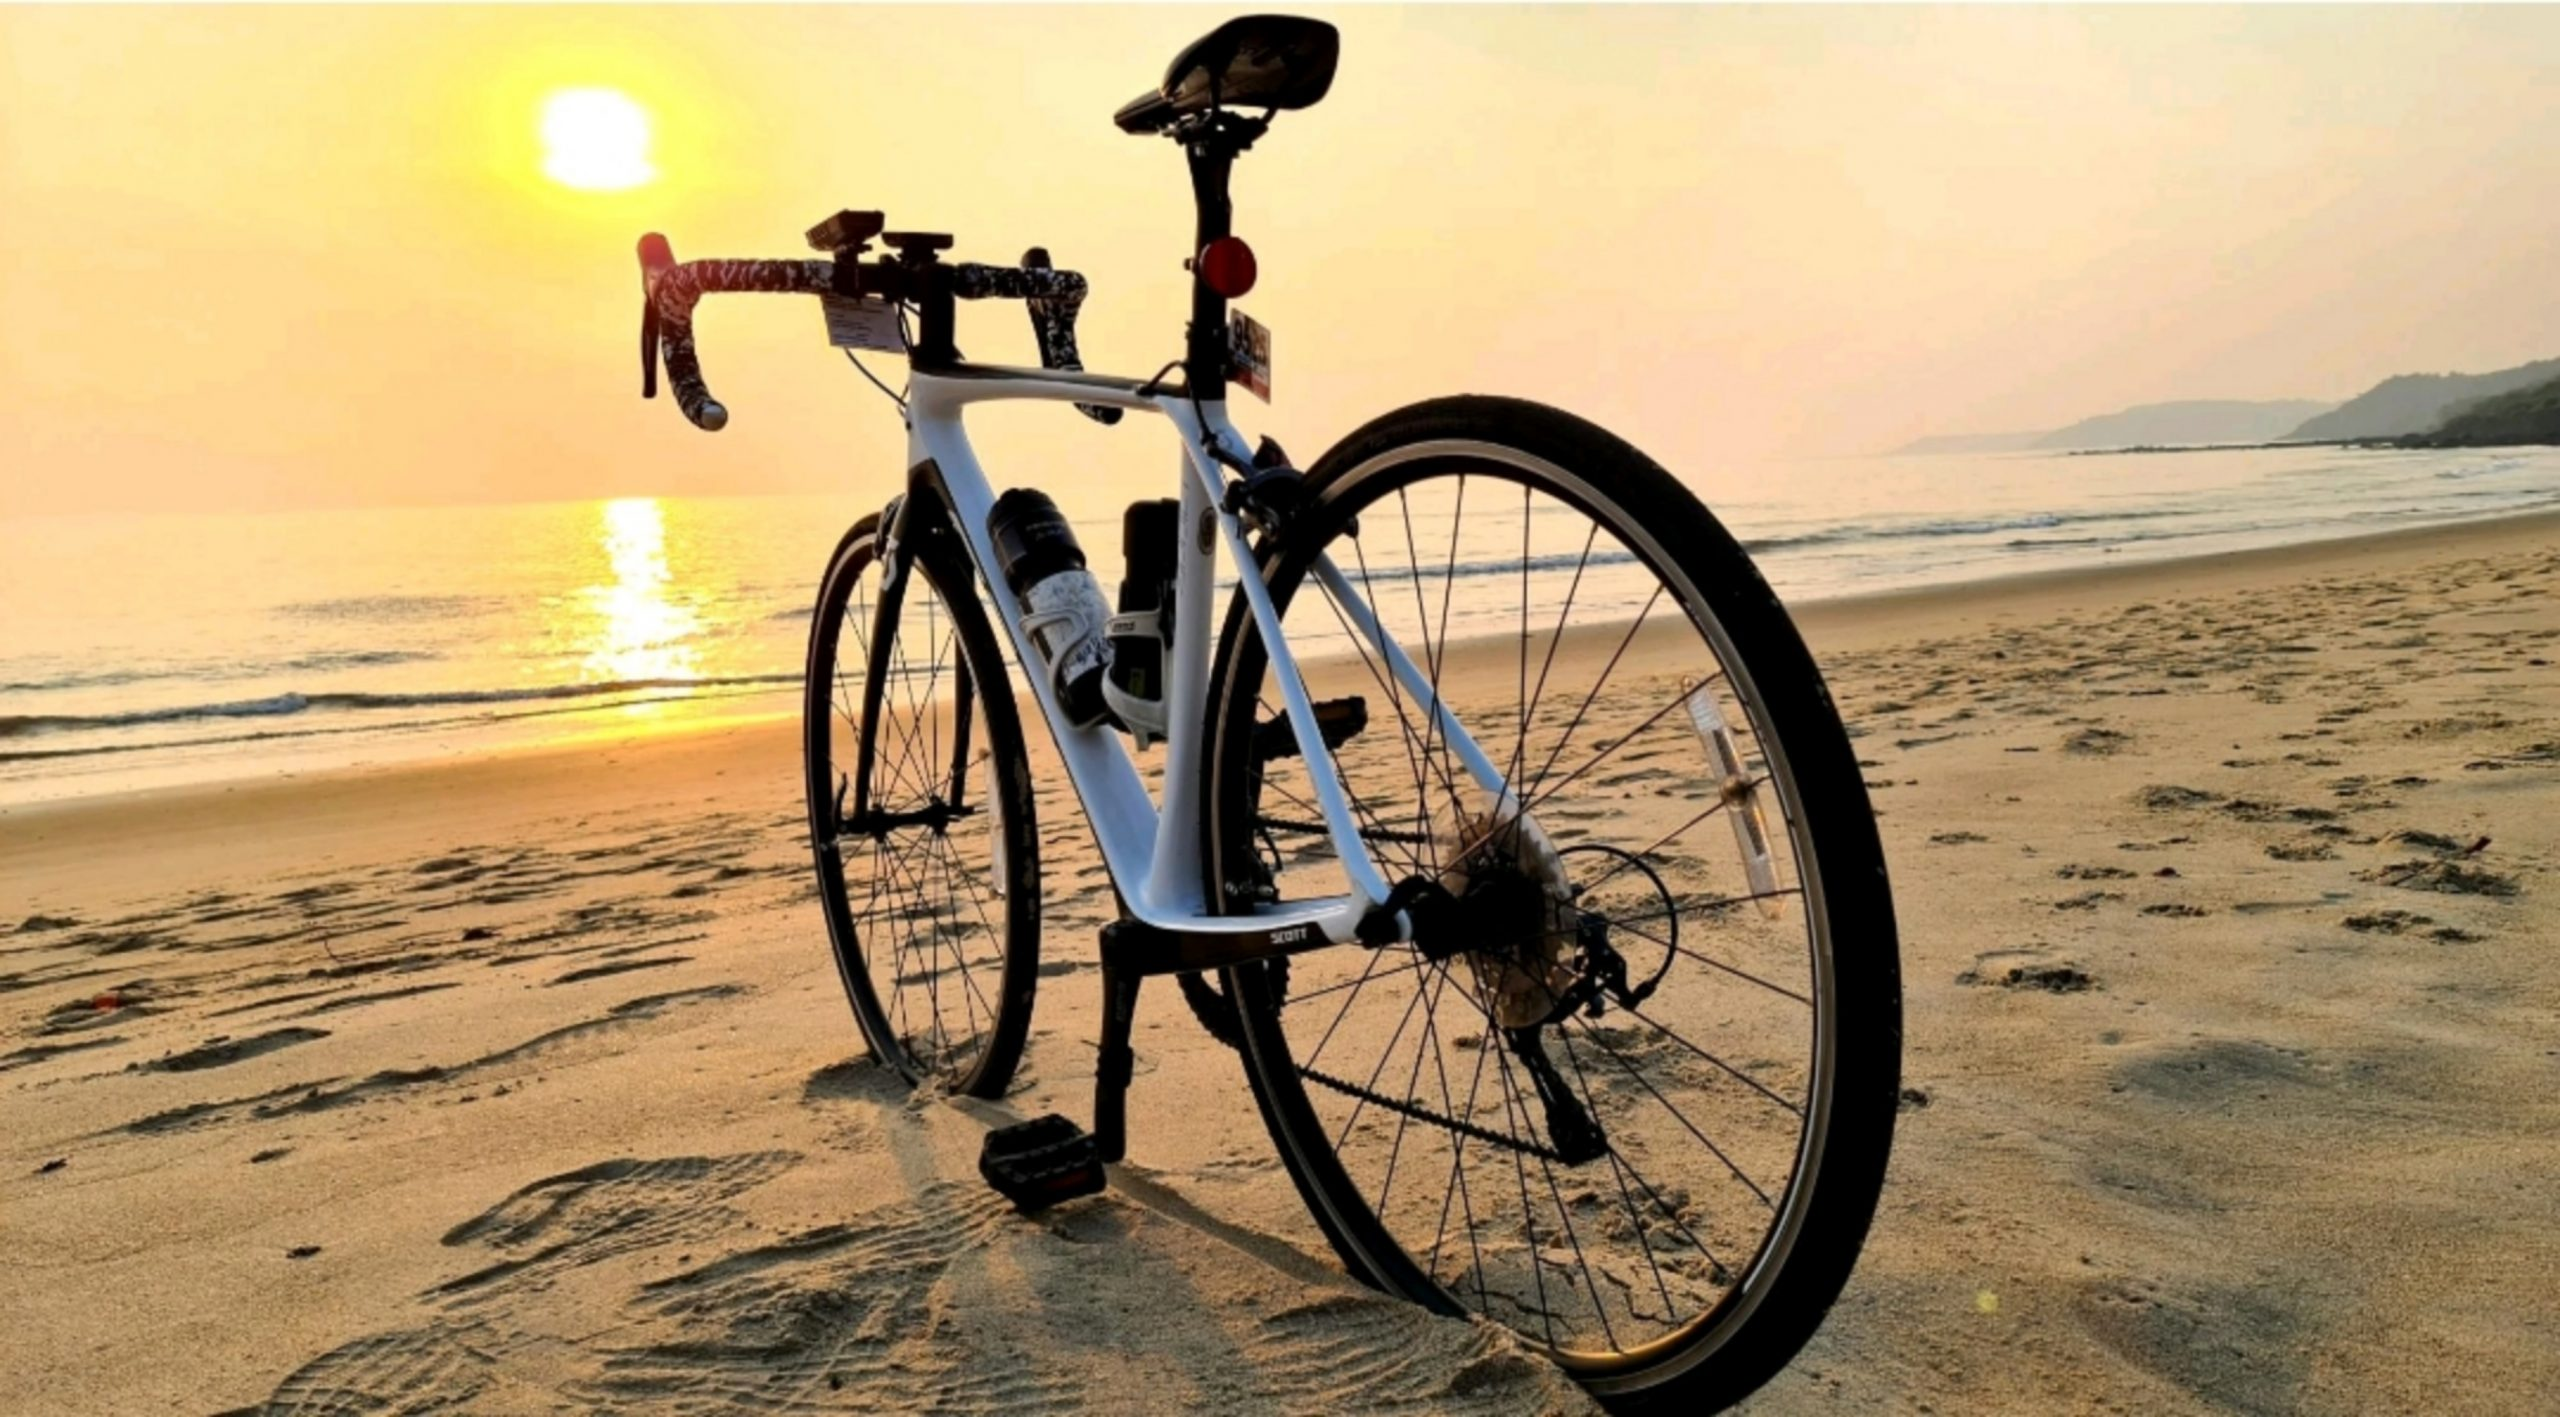 A bicycle on a beach